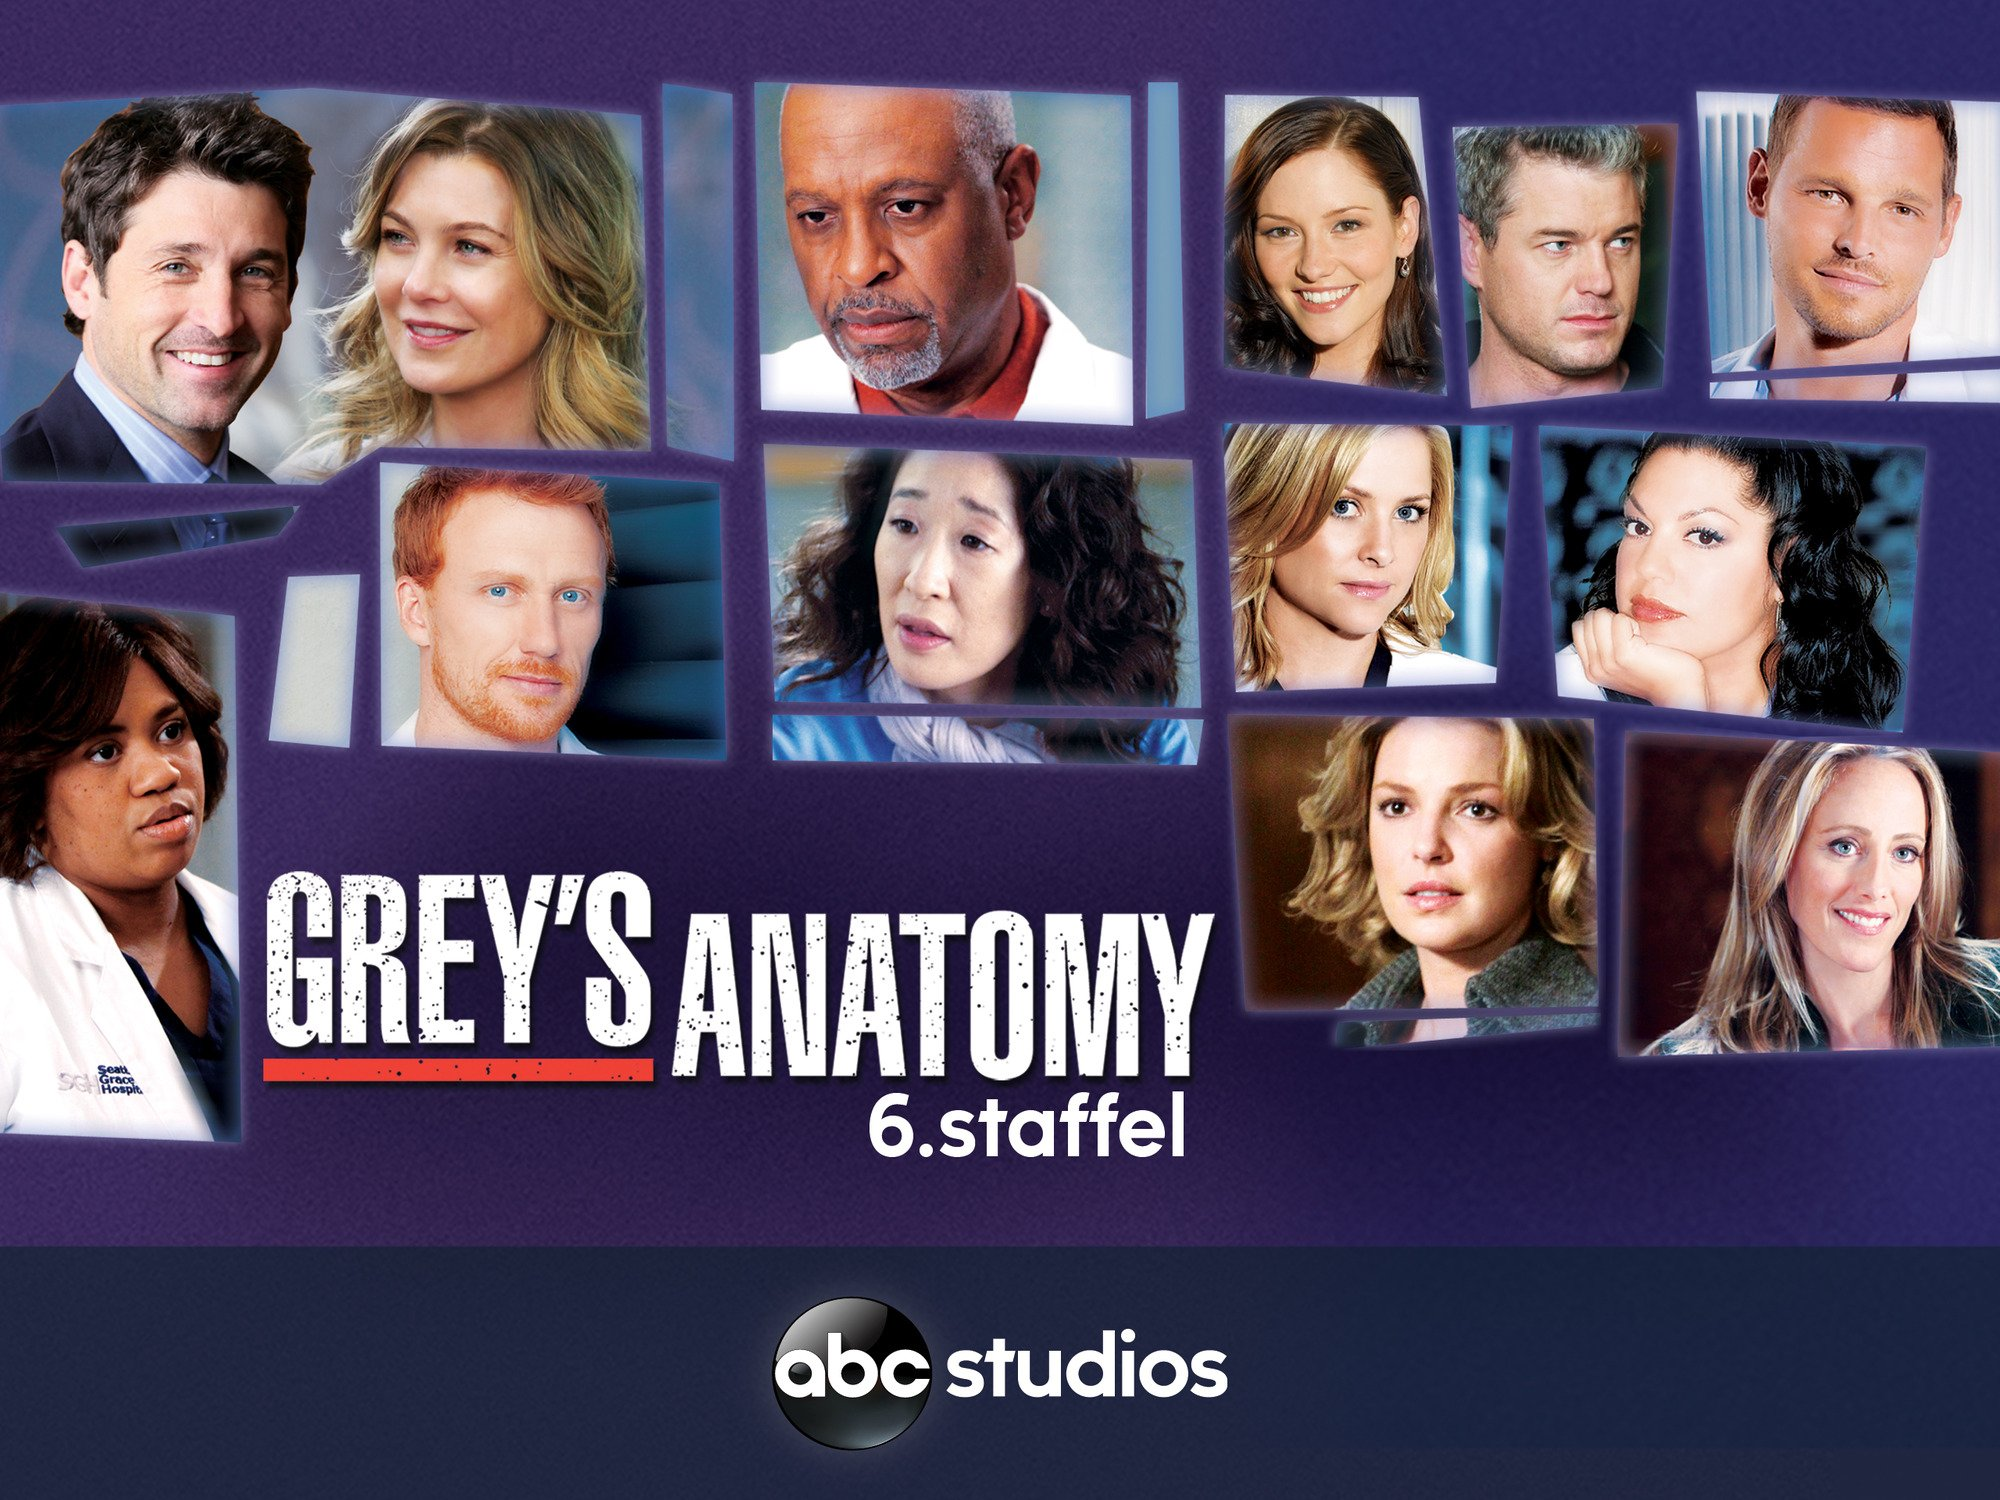 Amazon.de: Grey\'s Anatomy - Staffel 6 [dt./OV] ansehen | Prime Video